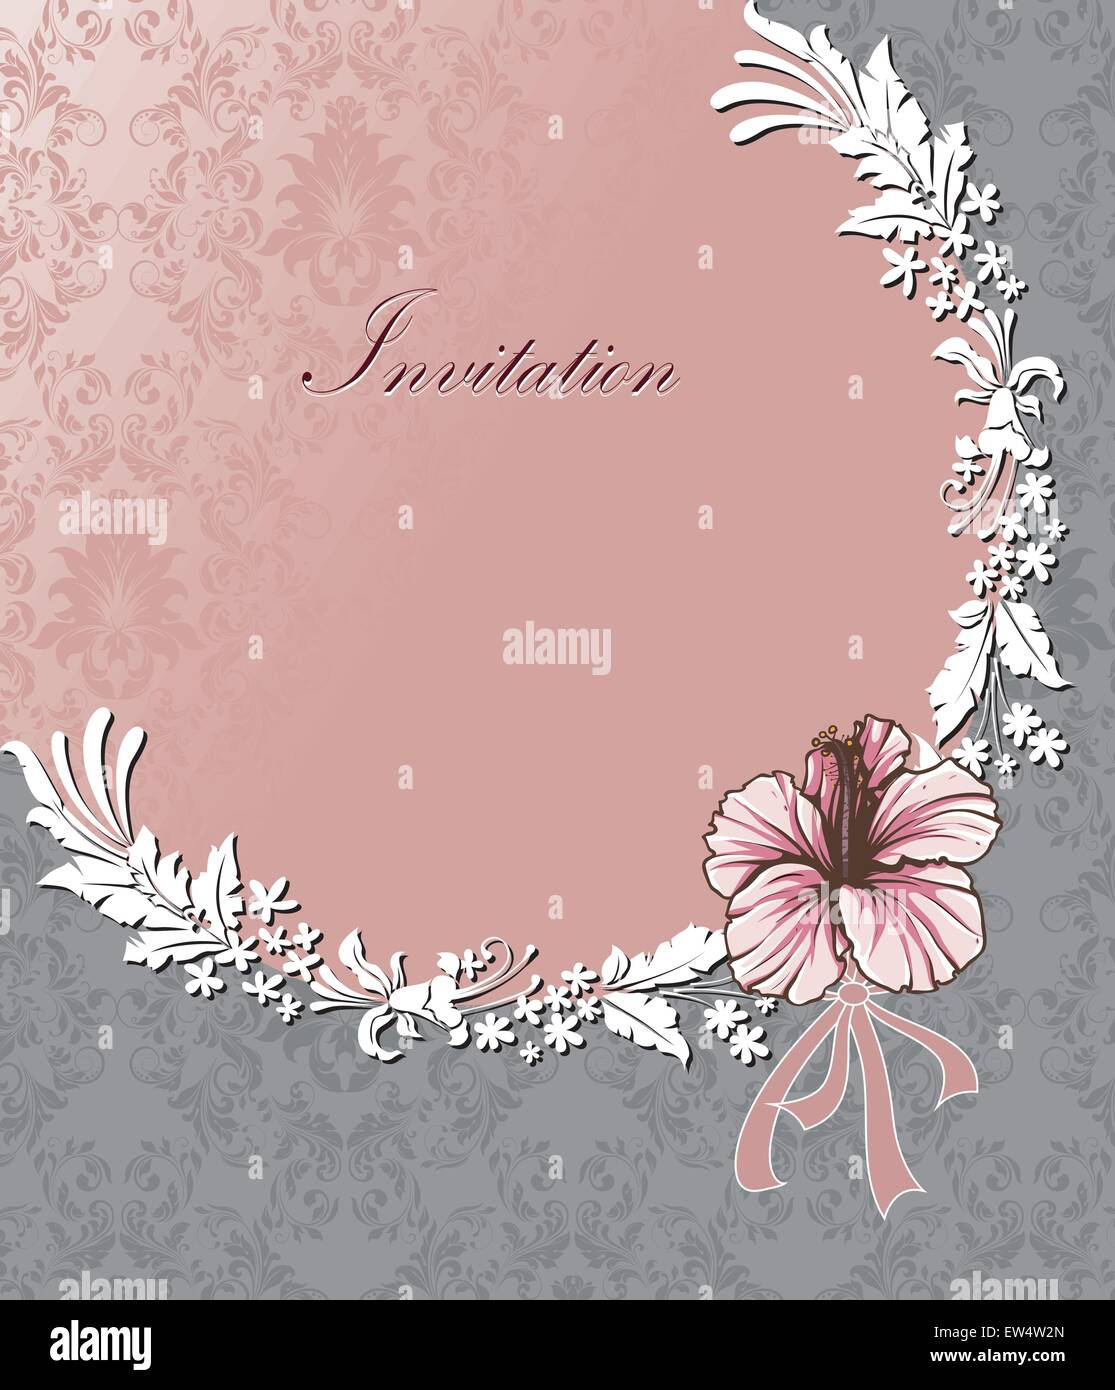 Vintage invitation card with ornate elegant retro abstract floral vintage invitation card with ornate elegant retro abstract floral design pink and white flowers and leaves in semi circle arrangement on light pink and stopboris Images